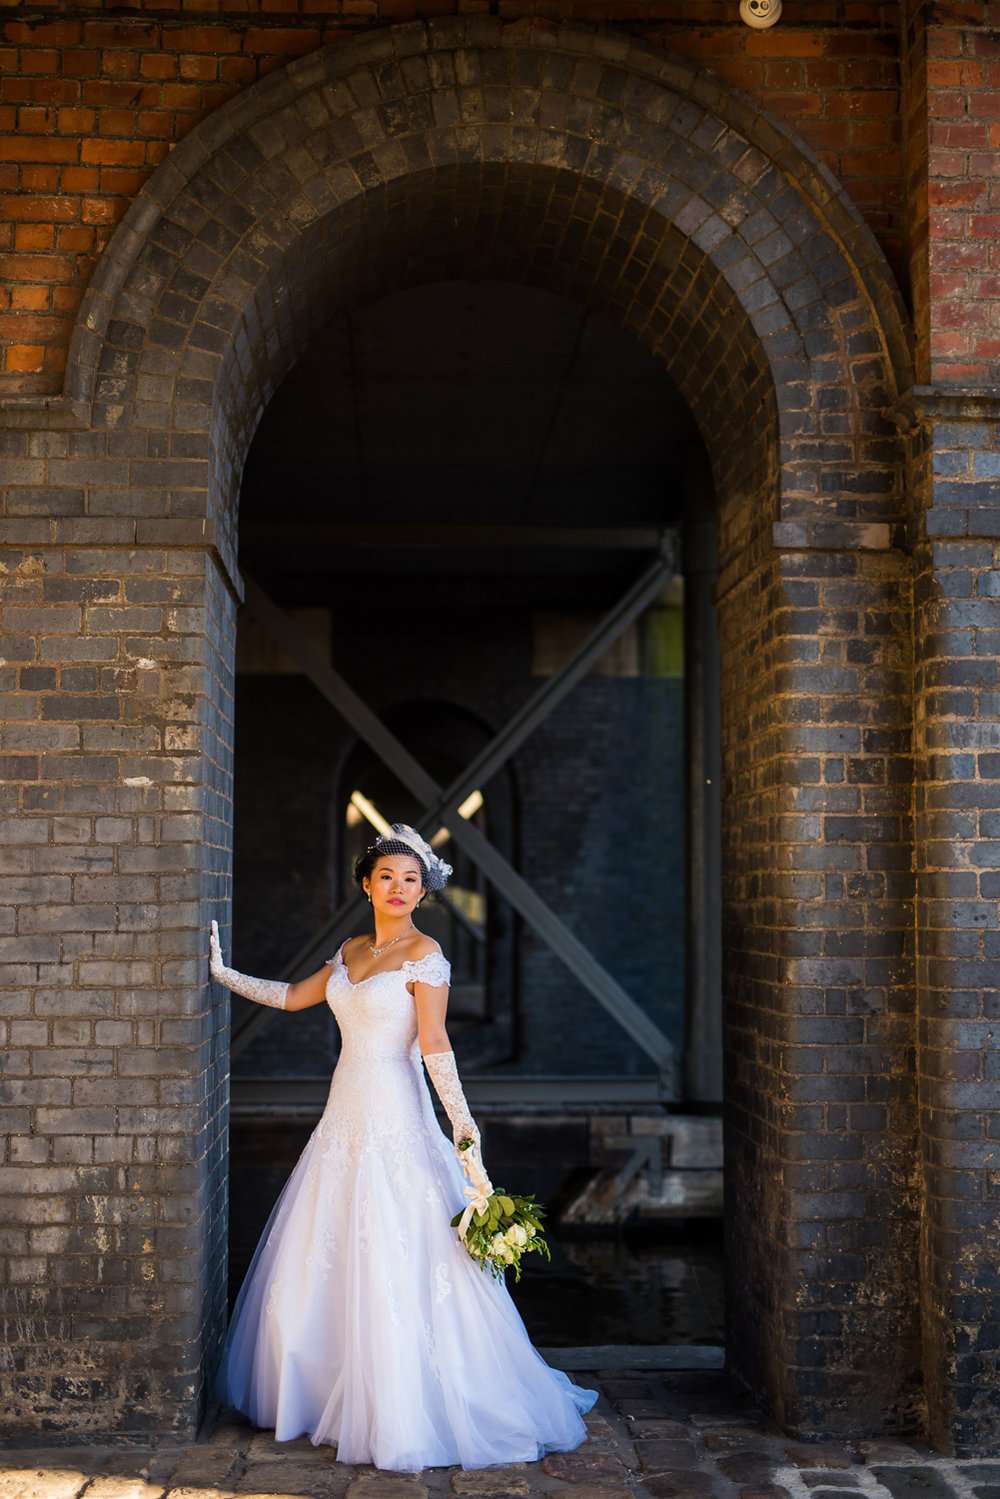 Nottingham wedding photographer 7.jpg